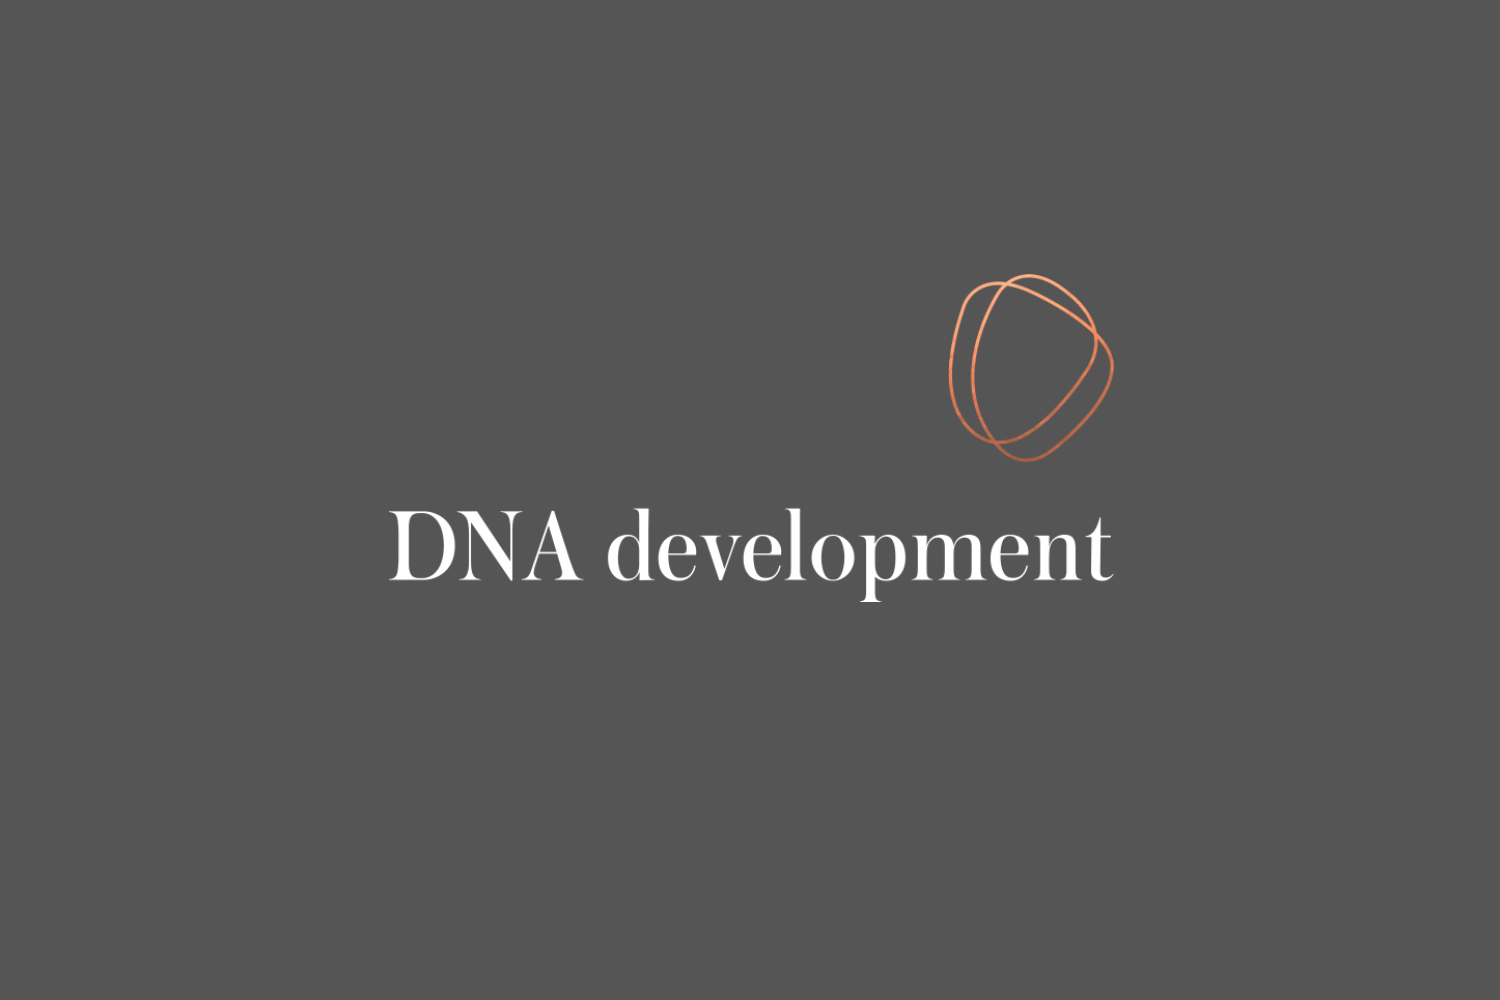 Logo and logotype for real estate investment and development business DNA development by Face